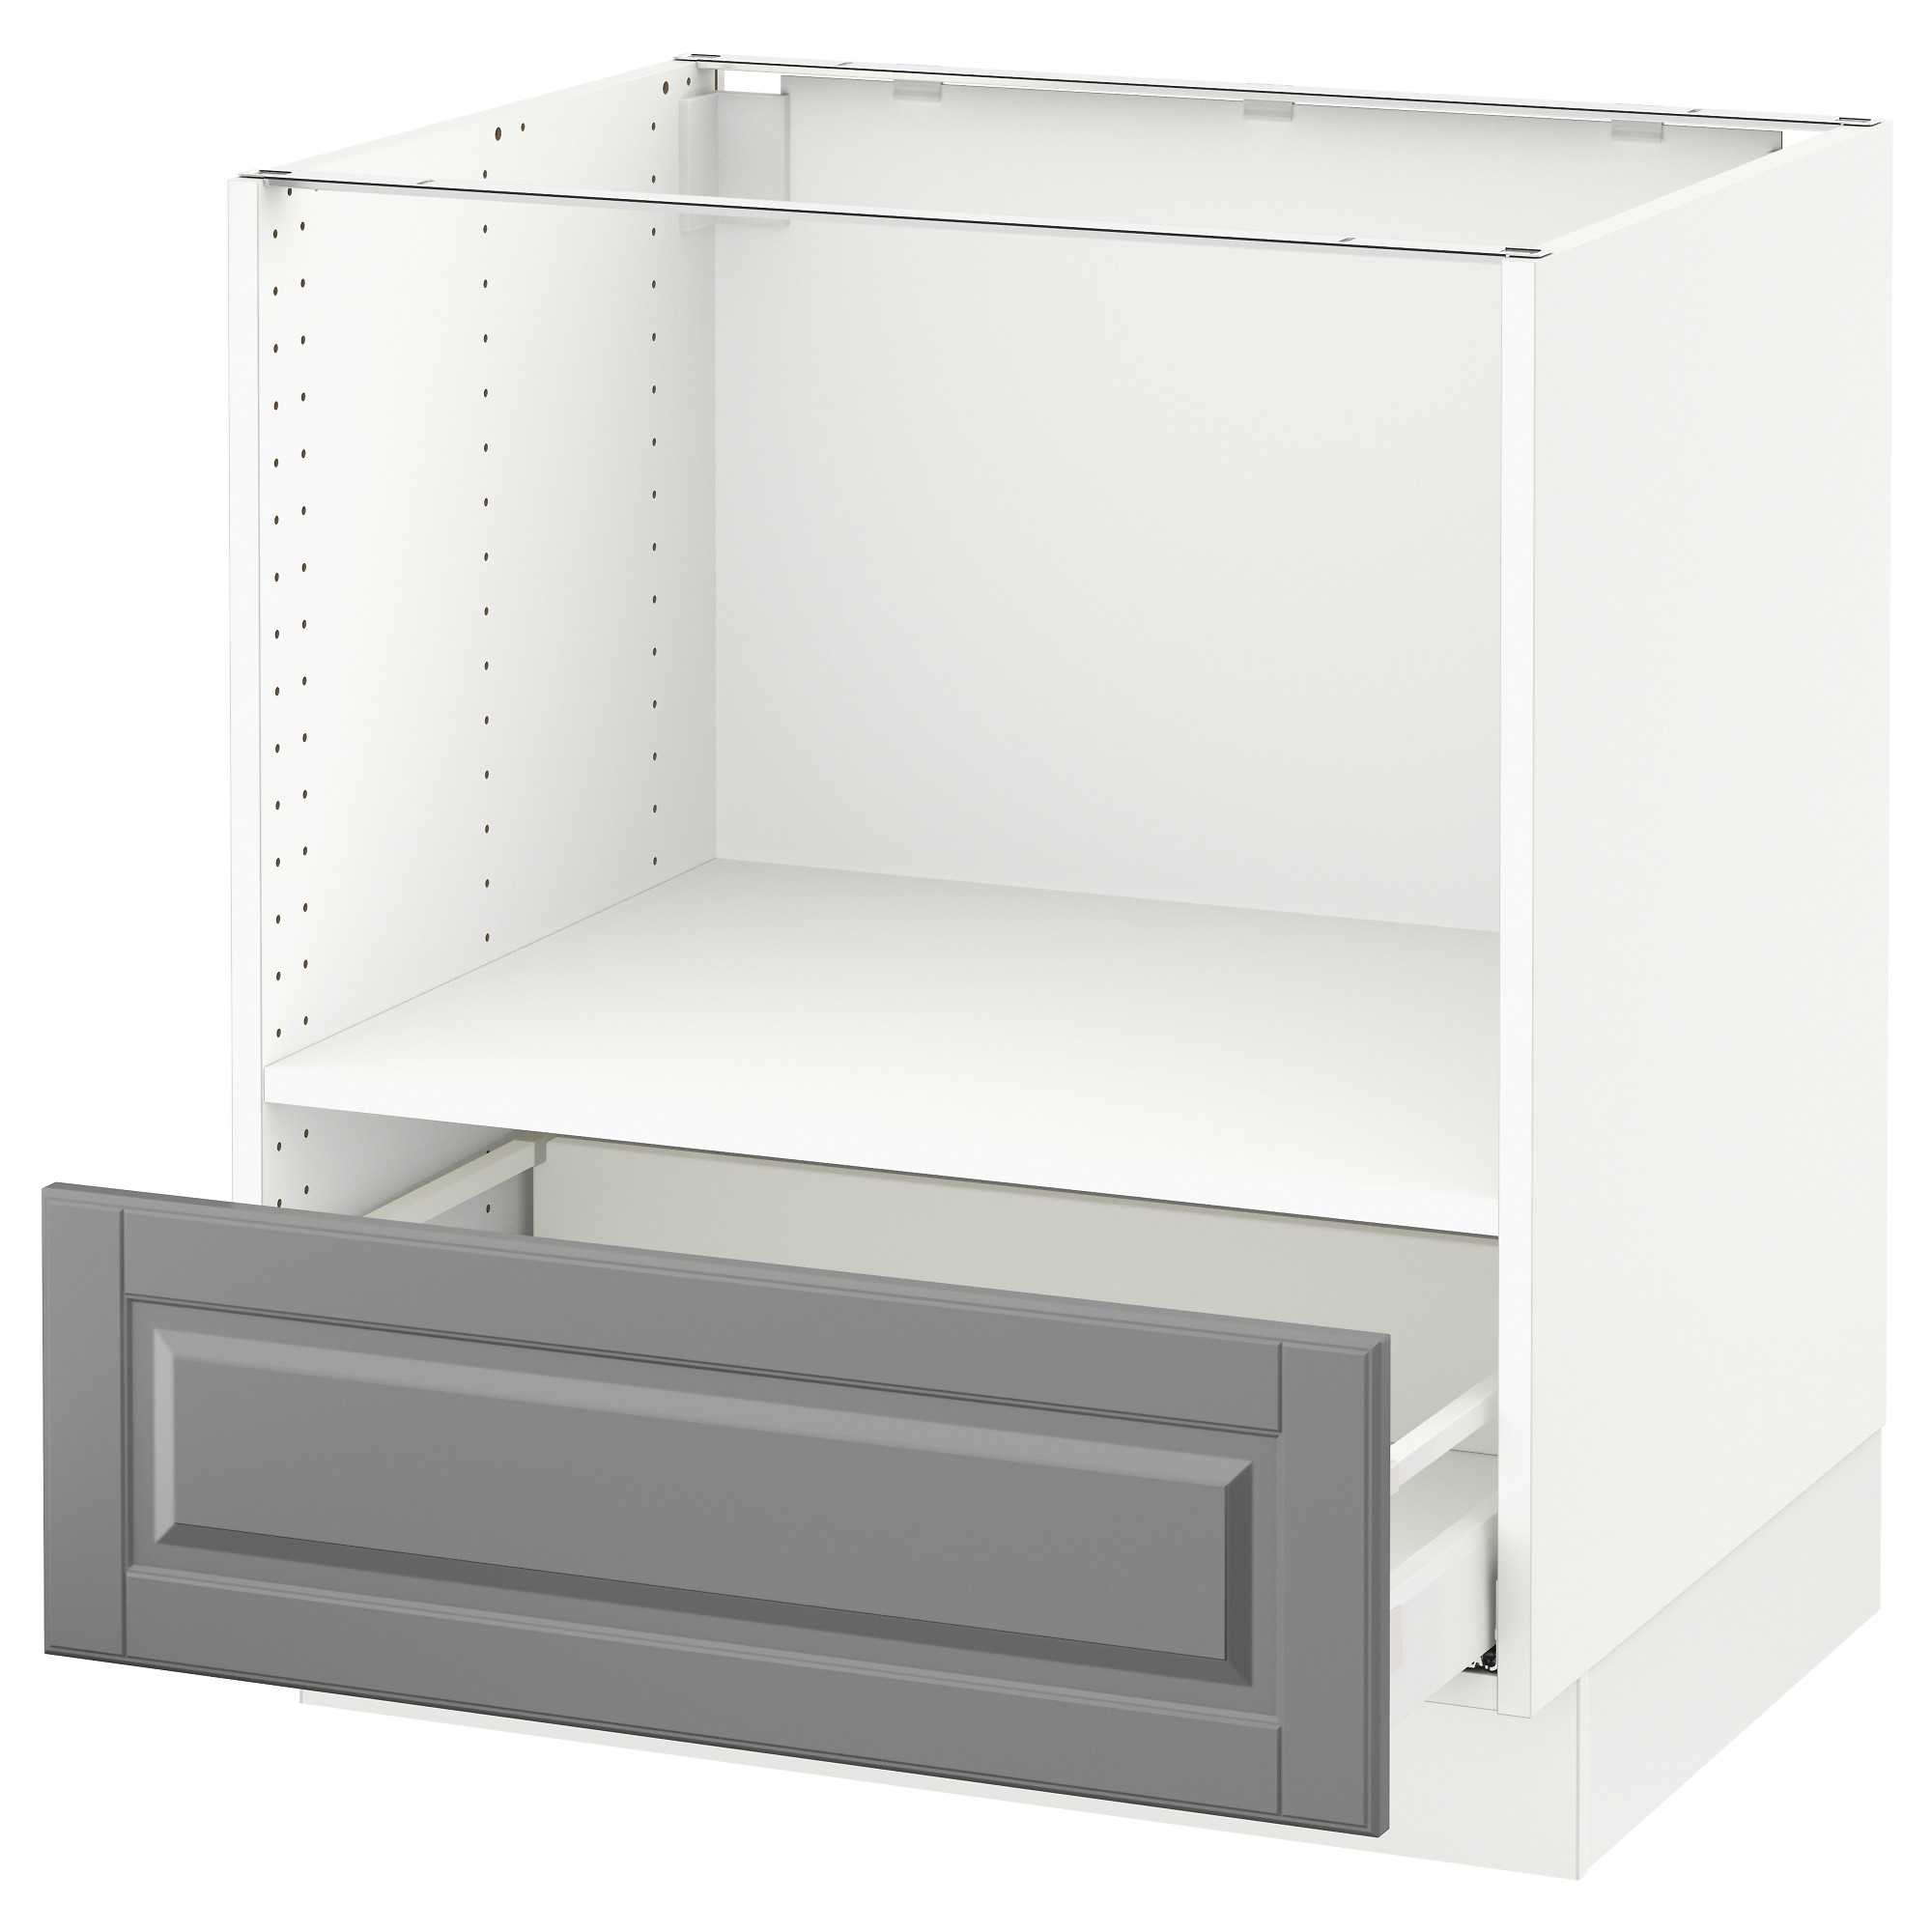 Interior Ikea Corner Base Cabinet base cabinets sektion system ikea cabinet for microwave1 drawer